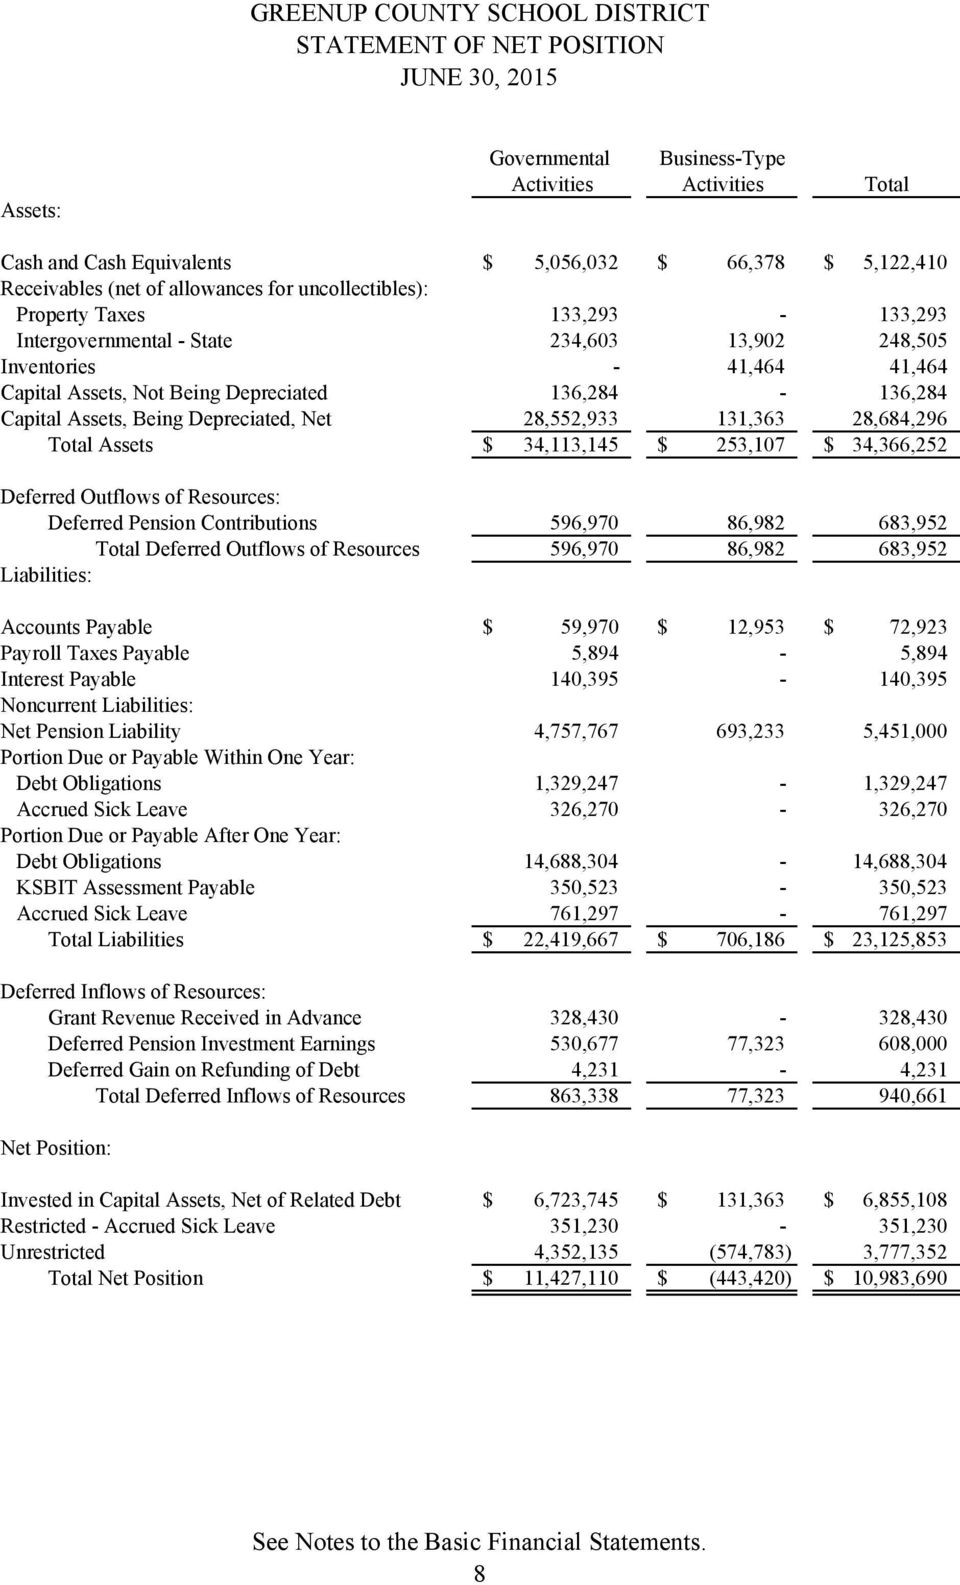 Being Depreciated, Net 28,552,933 131,363 28,684,296 Total Assets $ 34,113,145 $ 253,107 $ 34,366,252 Deferred Outflows of Resources: Deferred Pension Contributions 596,970 86,982 683,952 Total